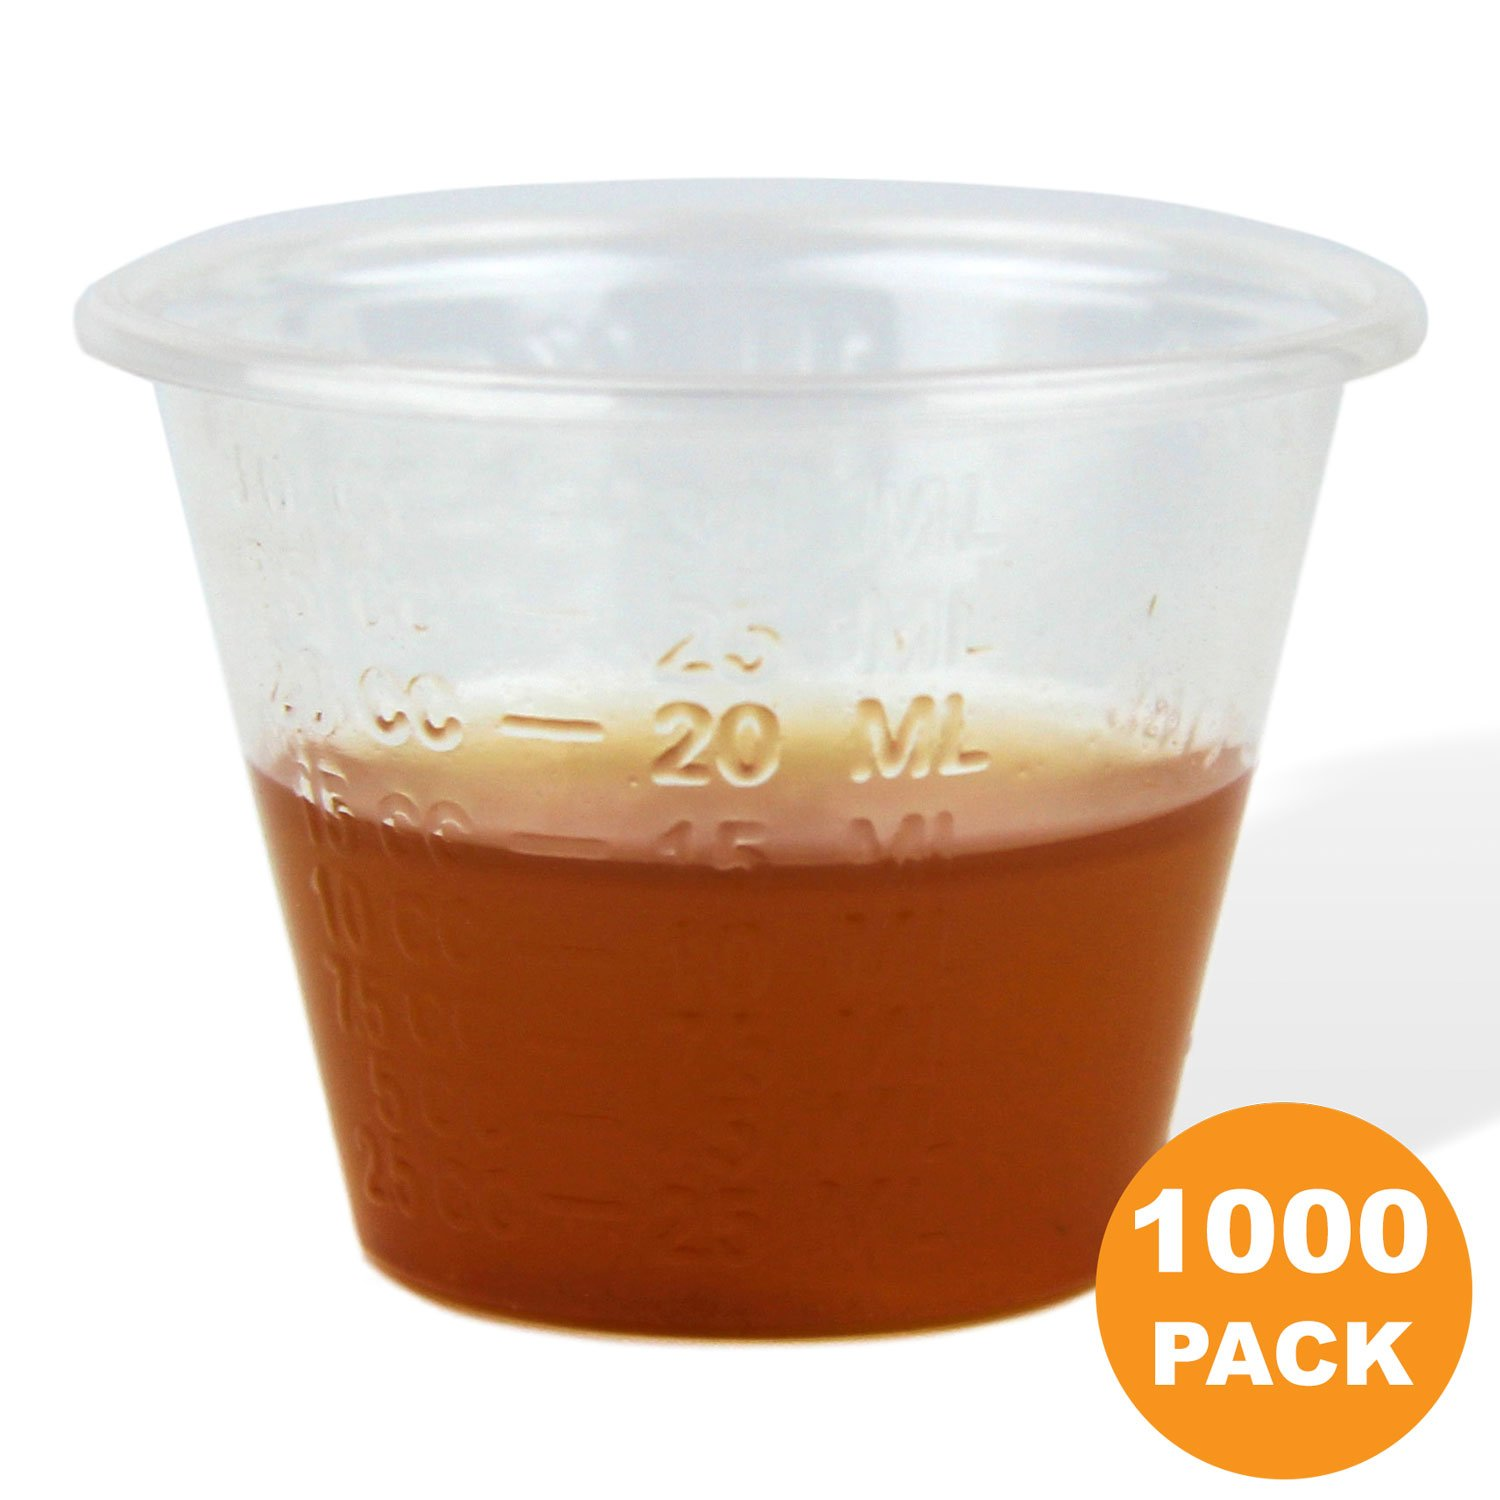 1 oz Graduated Medicine Cups – Polypropylene Disposable Measuring Cup, Mixing Cups with ML, Dram, CC, TBSP & FL oz Measurement Markings for Pill, Epoxy, Resin & Liquid/Powder - 1000 Cups